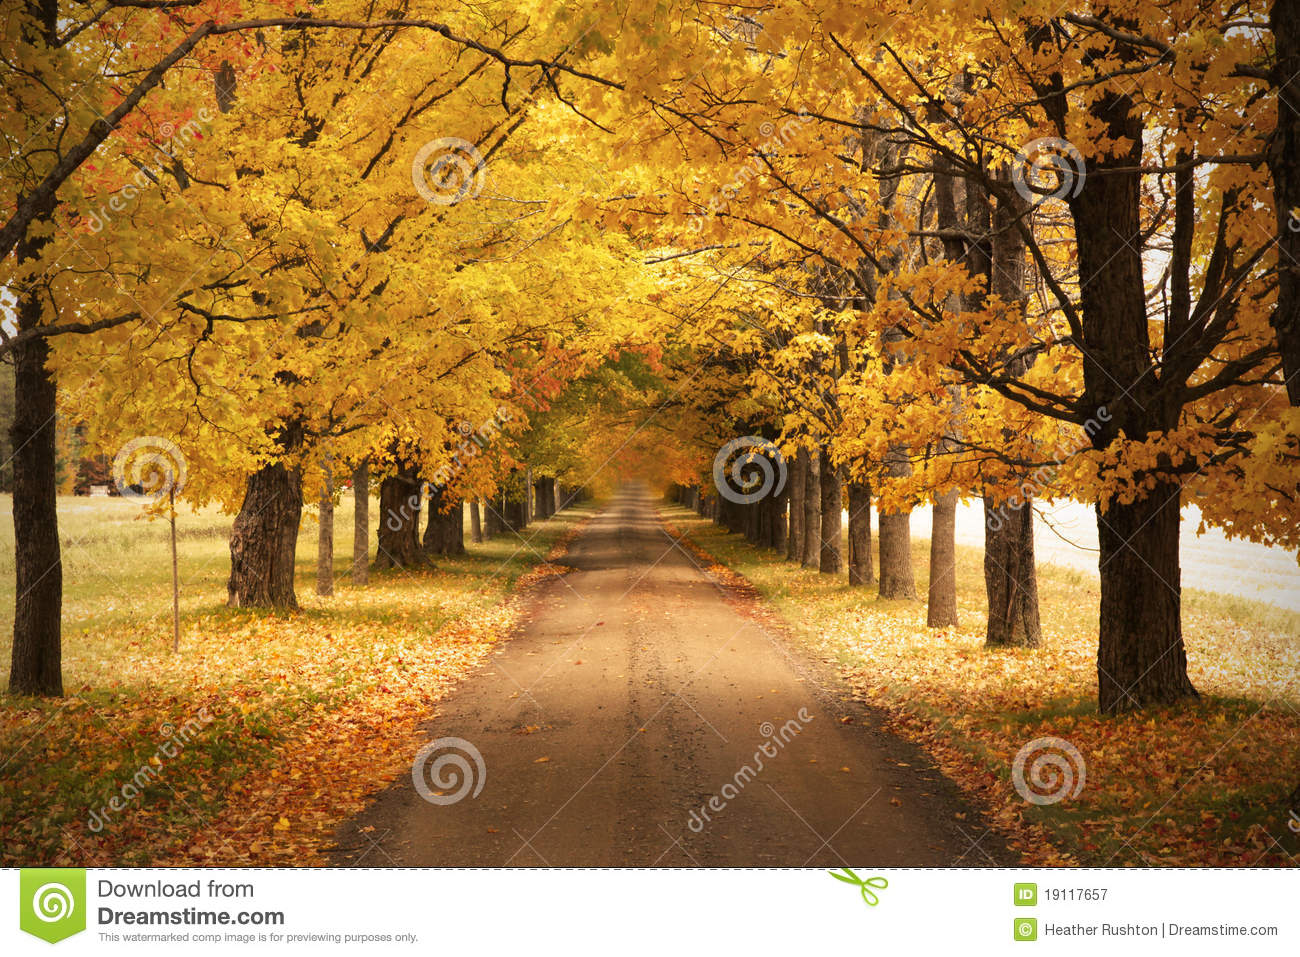 Free Computer Wallpaper Fall Leaves Autumn Road Stock Image Image Of Color Autumn Fallen